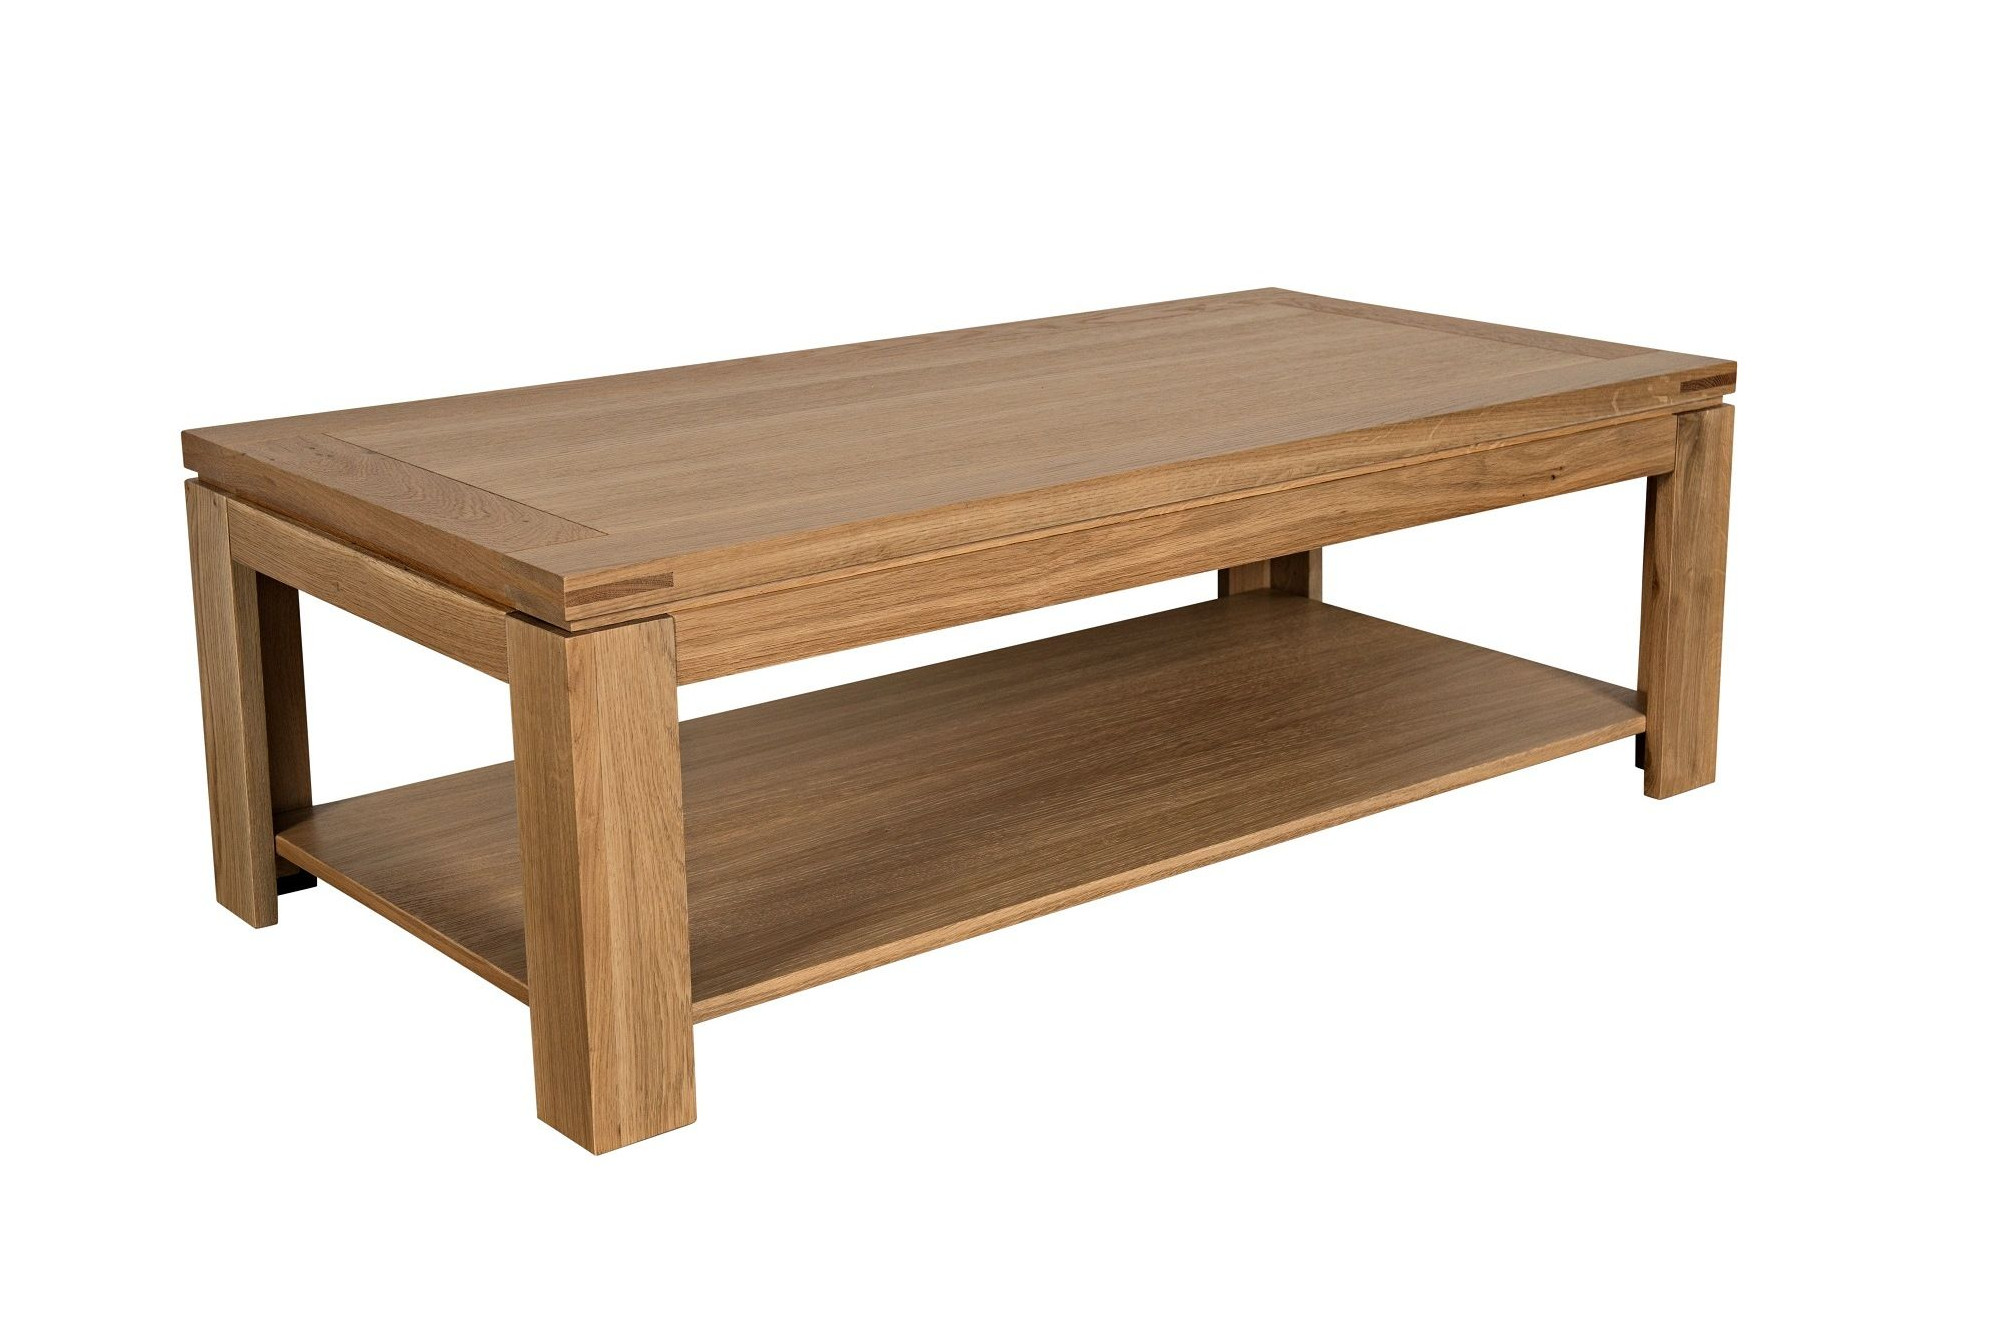 Table Basse Chene Table Basse Moderne En Bois Massif Chene De France Hellin